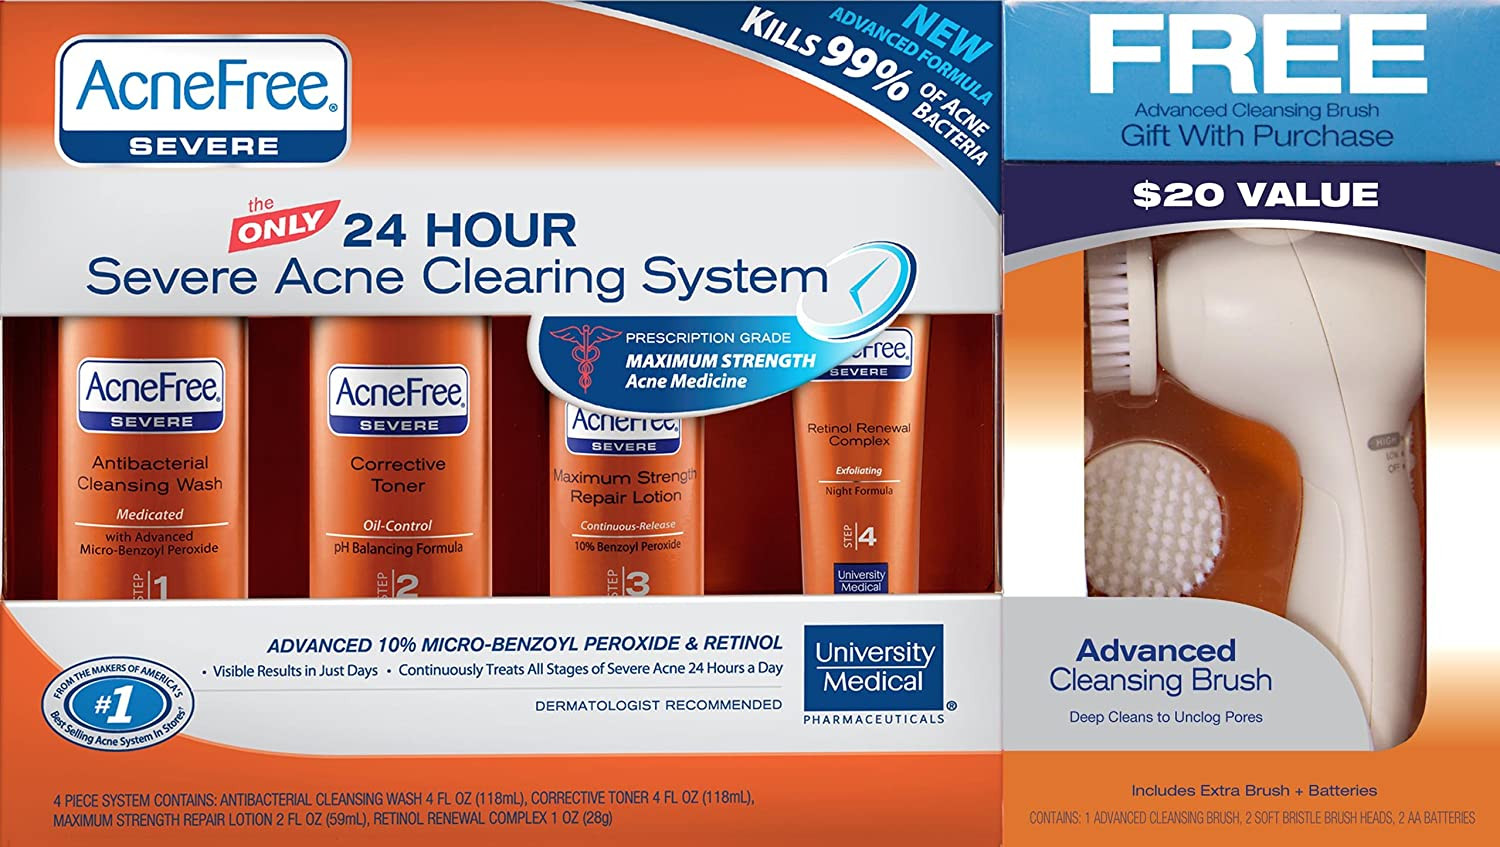 AcneFree 24-Hour Severe Acne Clearing System with Advanced Cleansing Brush POLYHYMNIA Women Ageless Face Lift Firming Pure Hyaluronic Acid Anti Wrinkle Skin Care Essential Oil